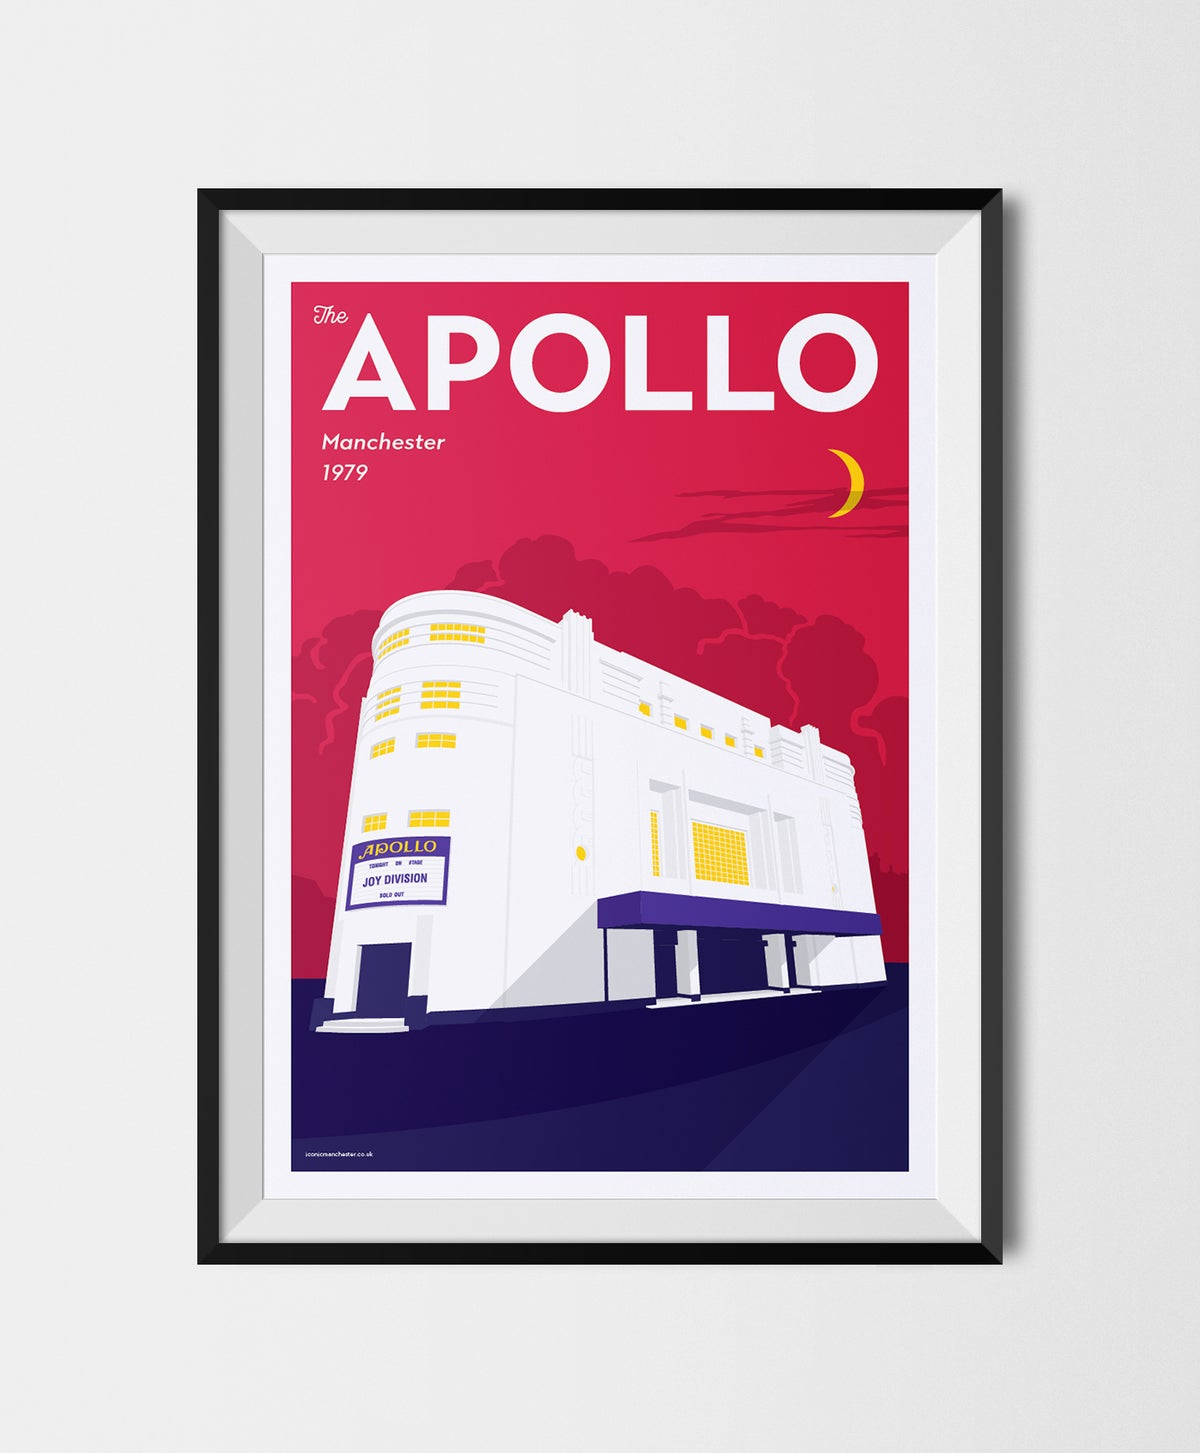 Image of The Apollo